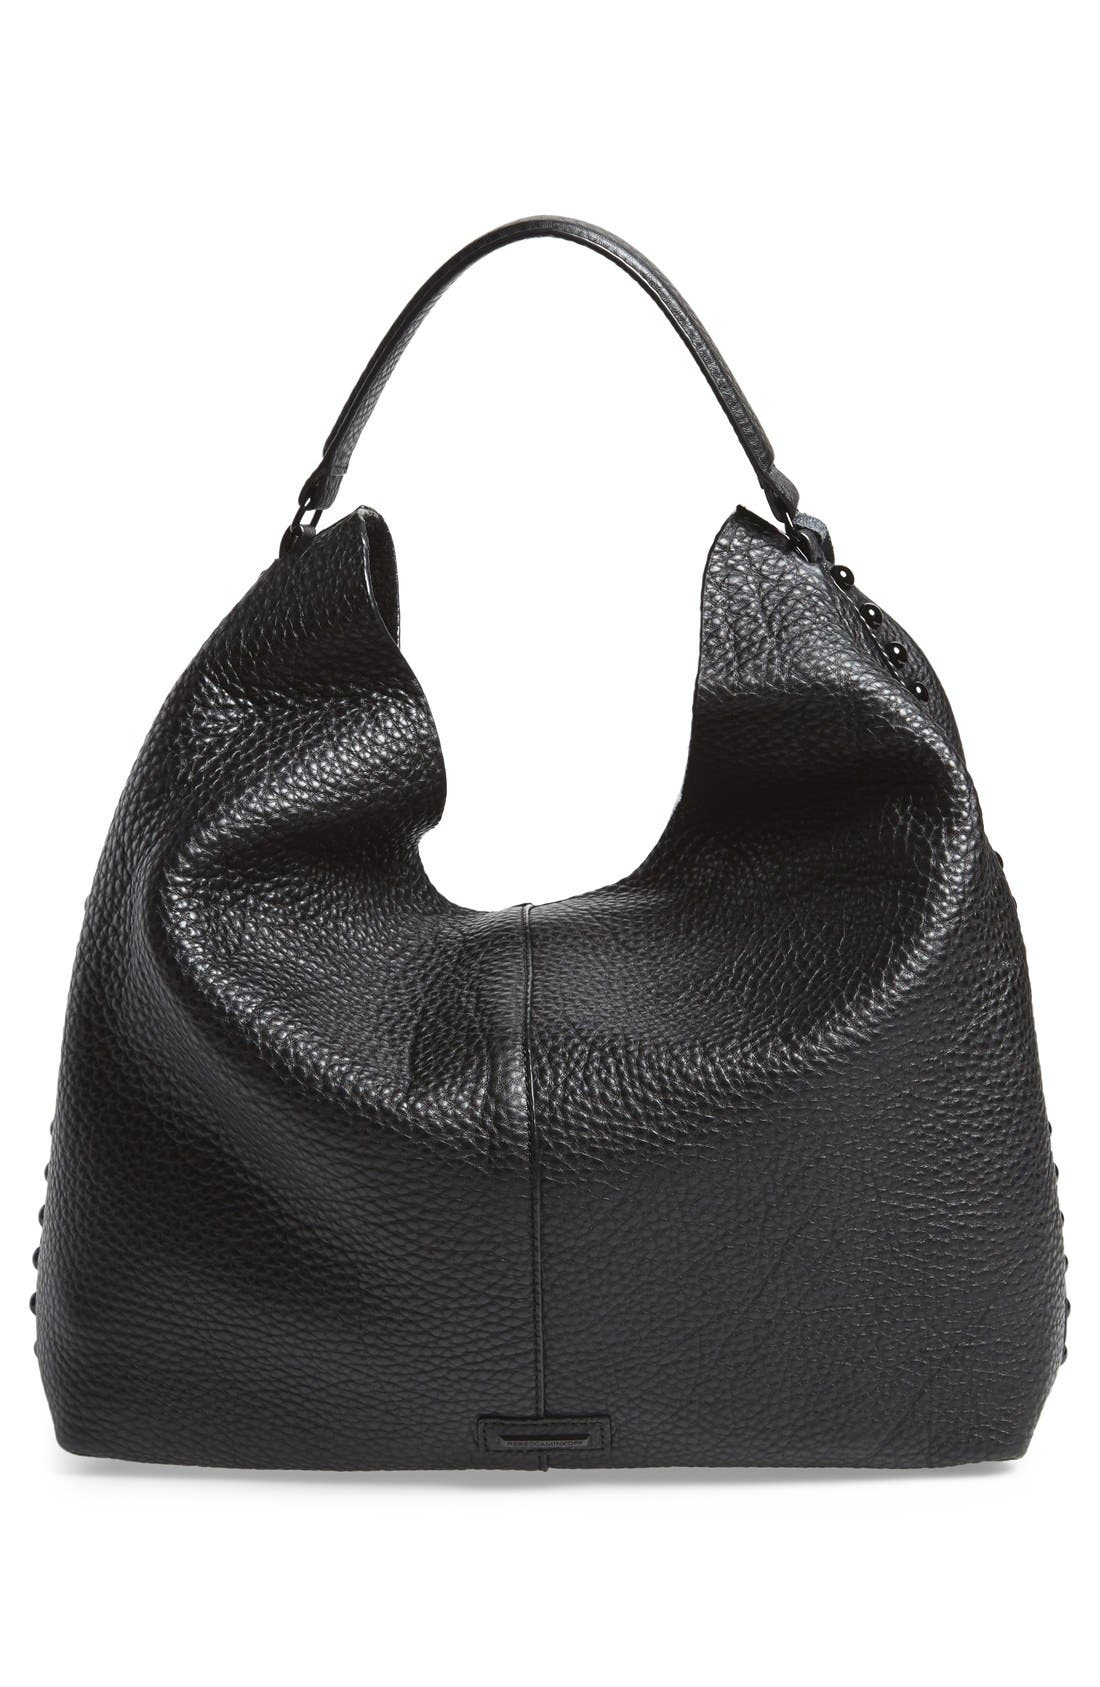 Alternate Image 3  - Rebecca Minkoff Unlined Hobo